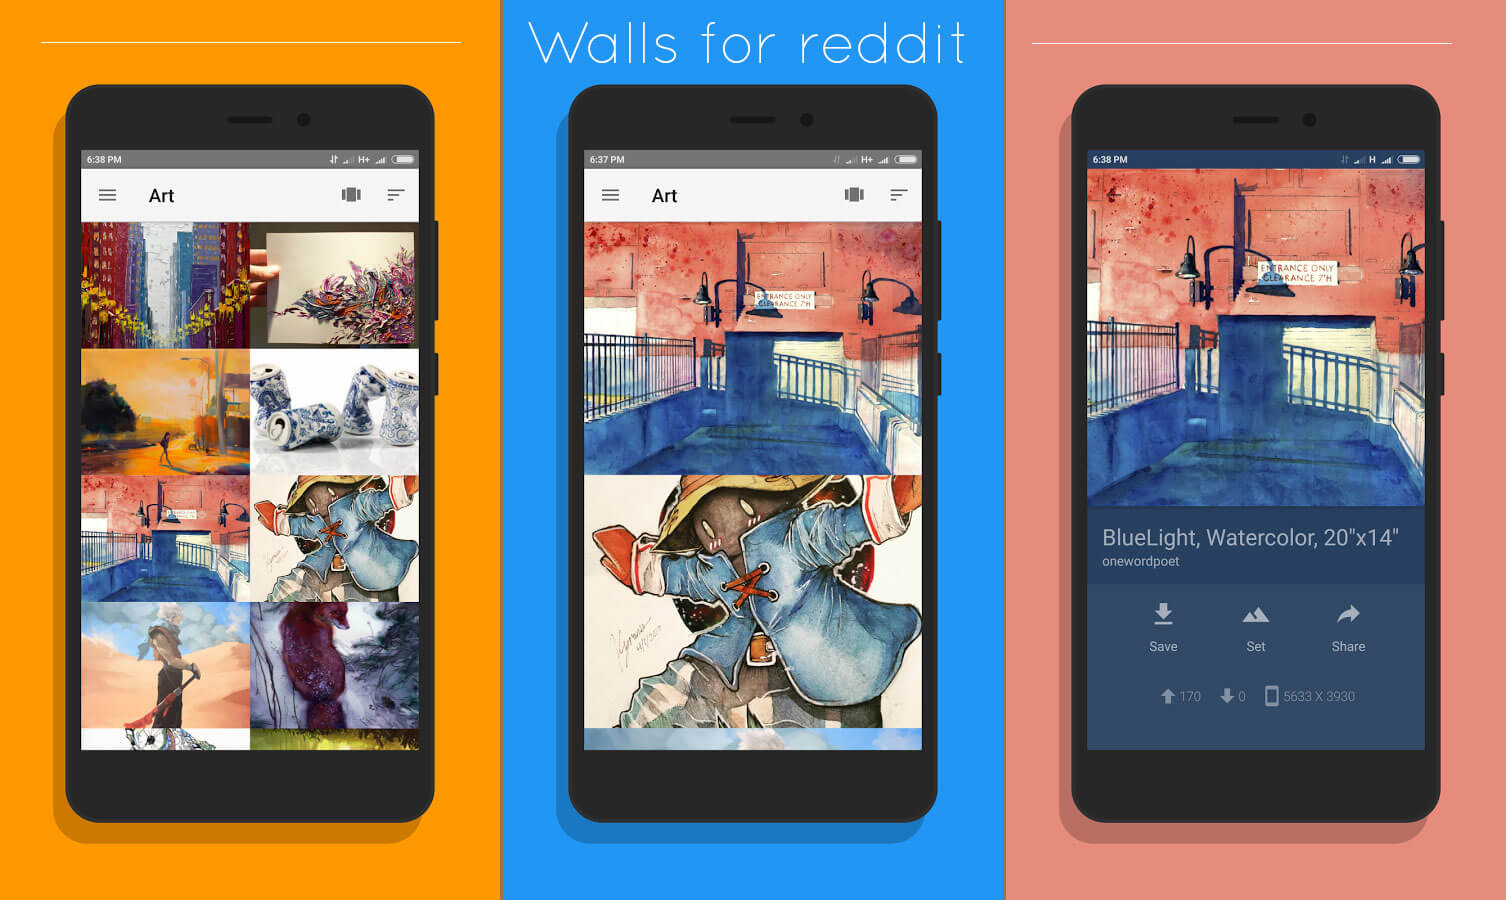 Walls for Reddit best Wallpaper App